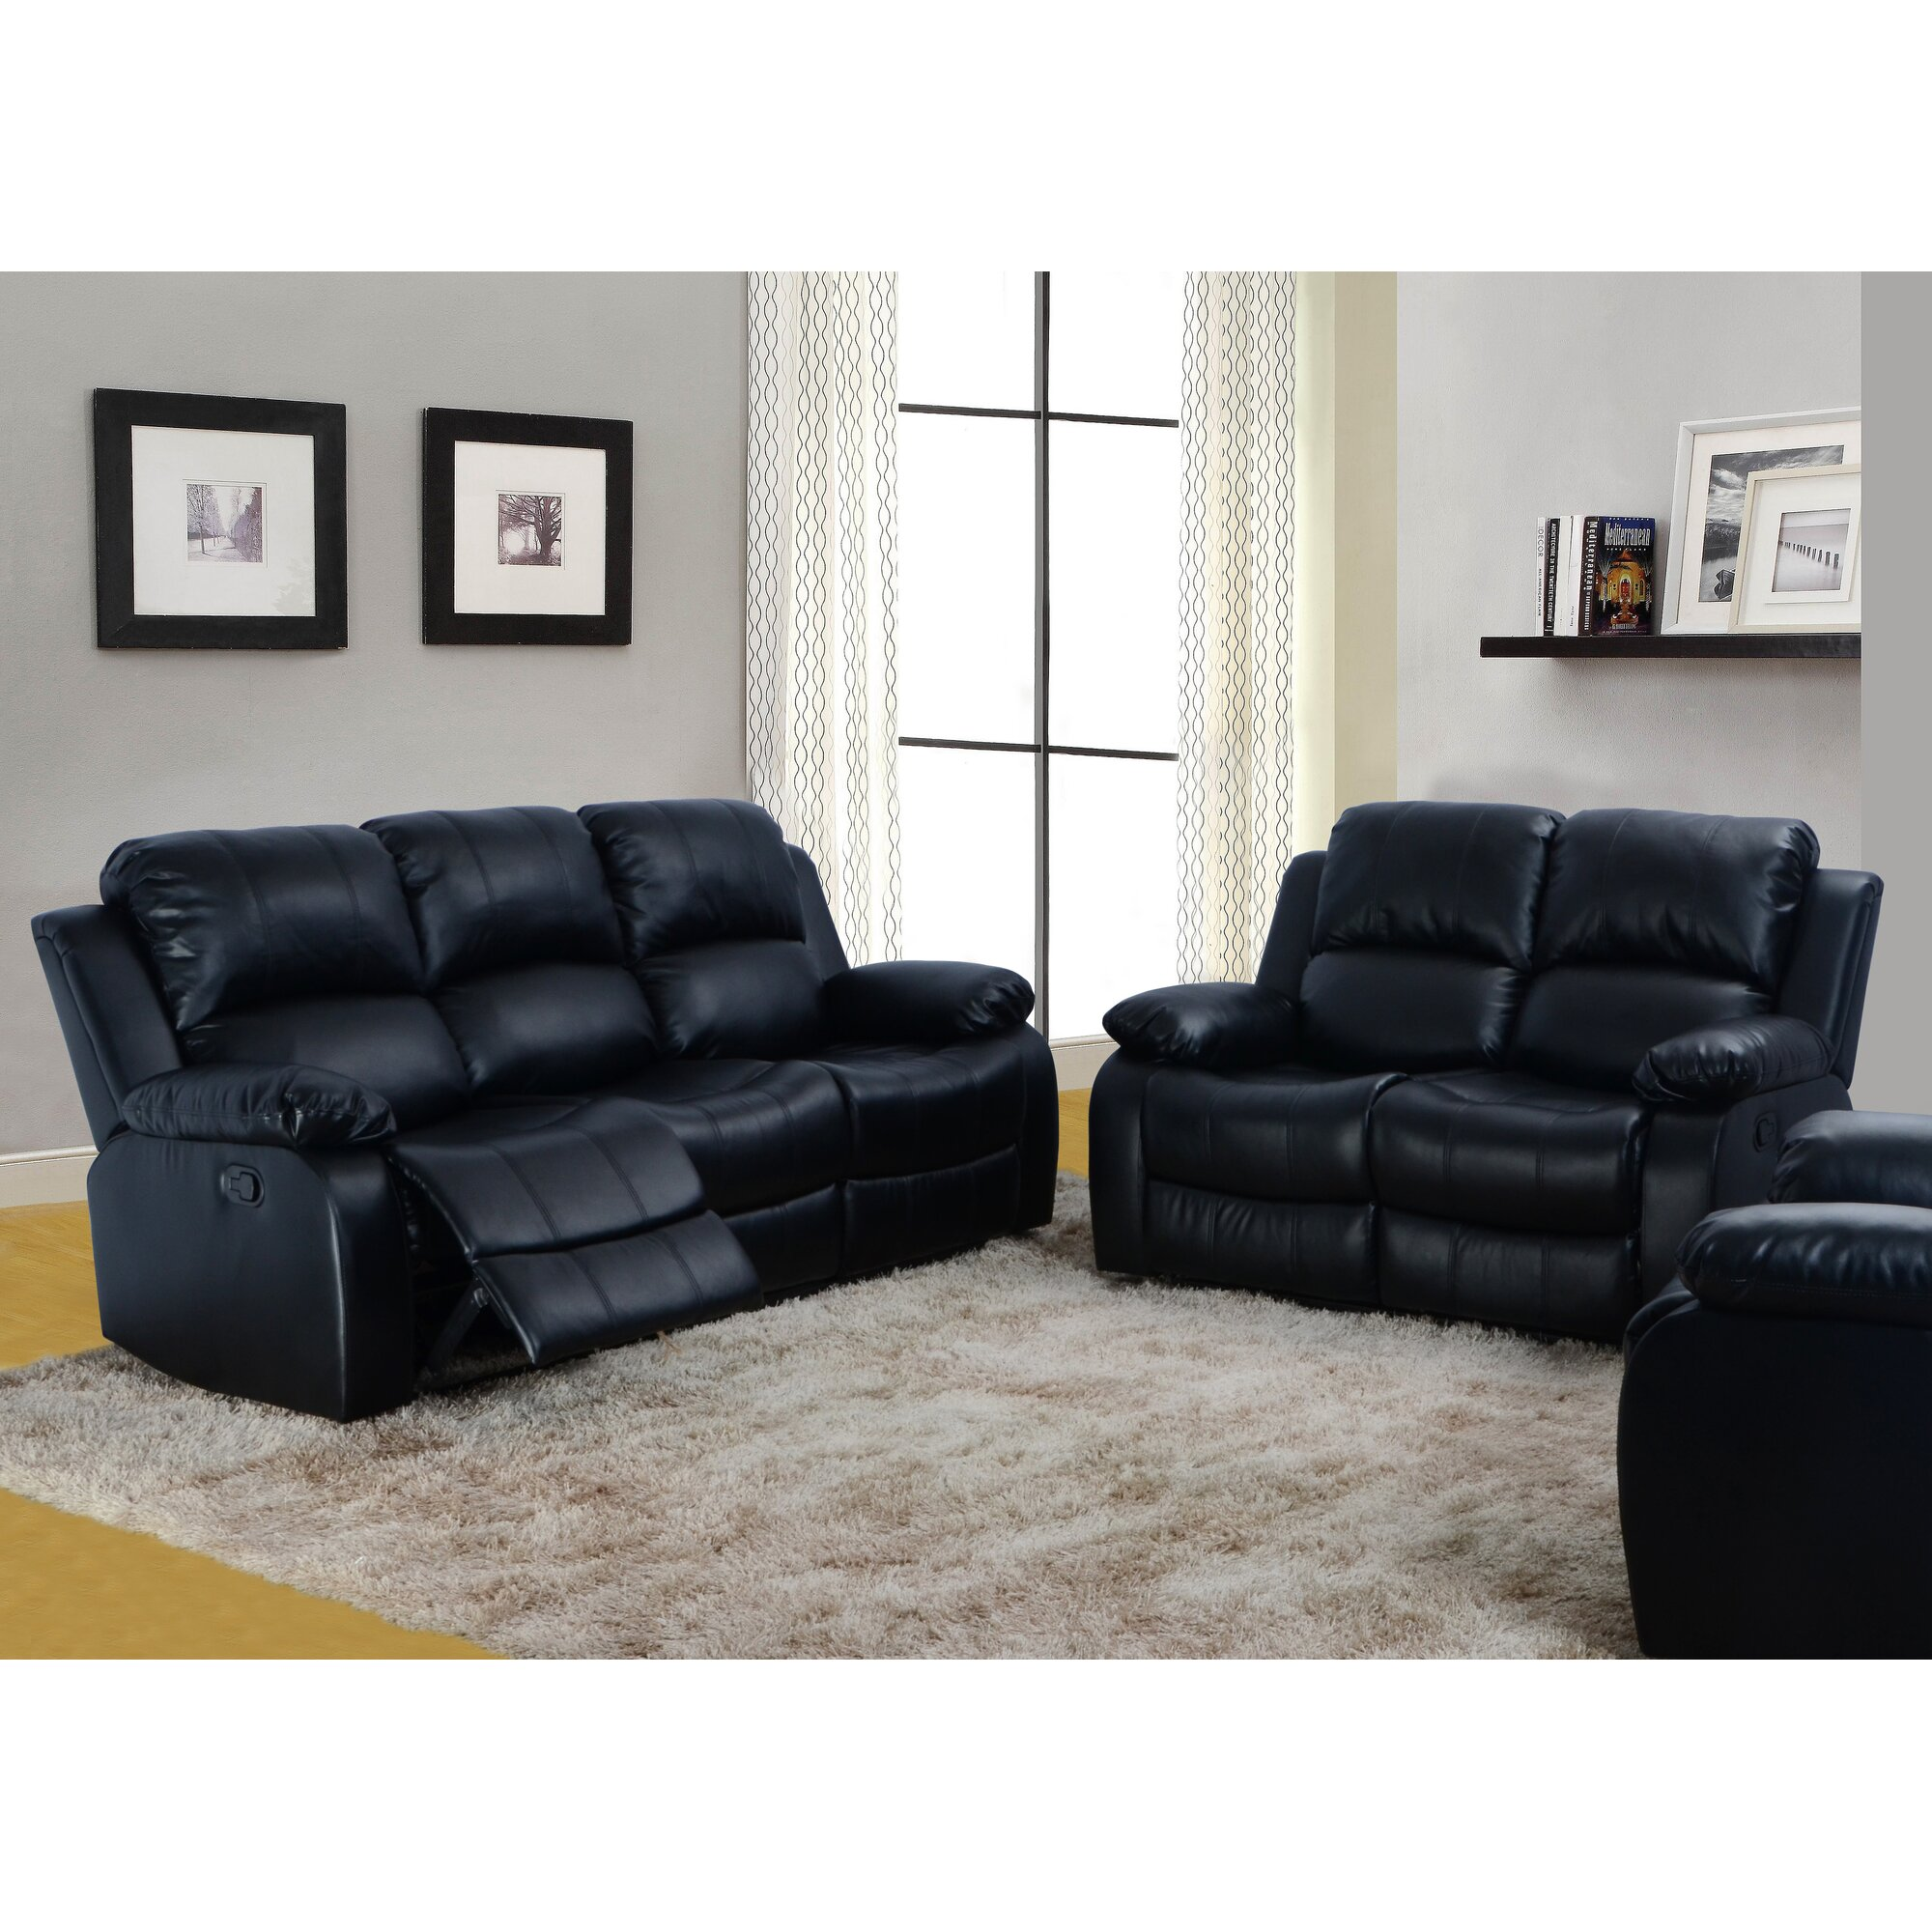 maumee 2 piece bonded leather reclining living room sofa set - Swivel Recliner Chairs For Living Room 2